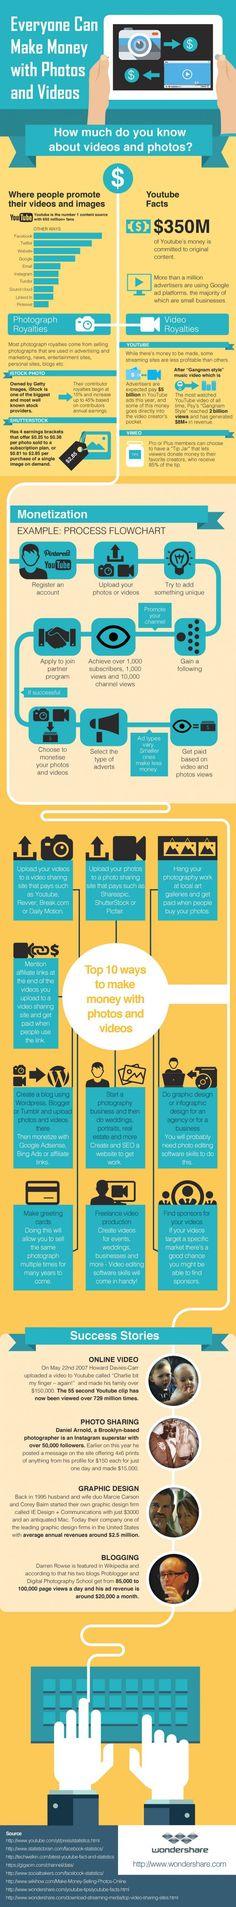 Everyone Can Make Money with Videos and Photos